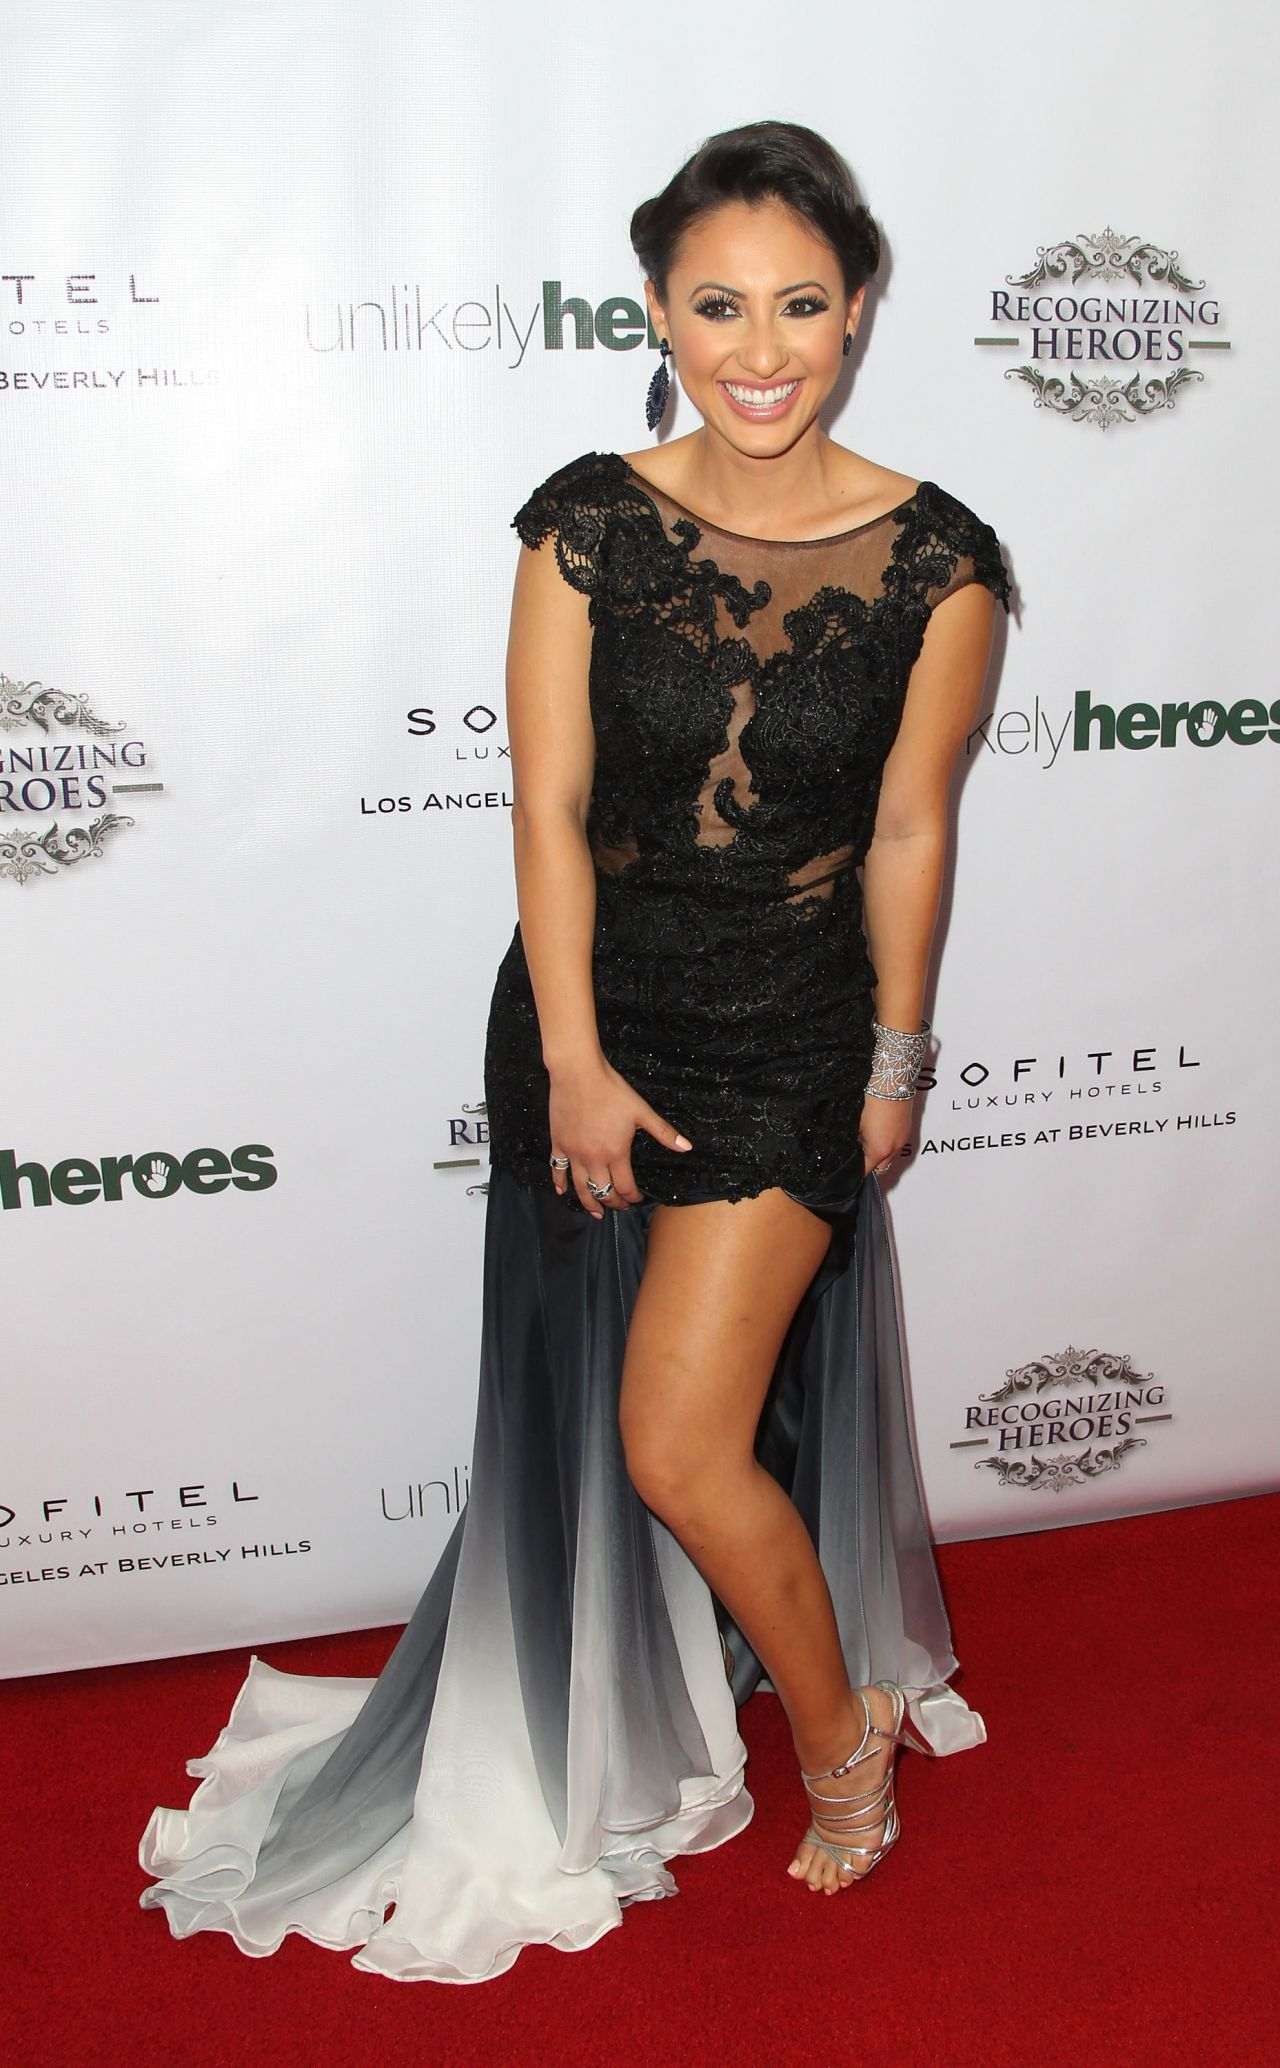 Francia Raisa - 2014 Unlikely Heroes Awards Dinner And ...